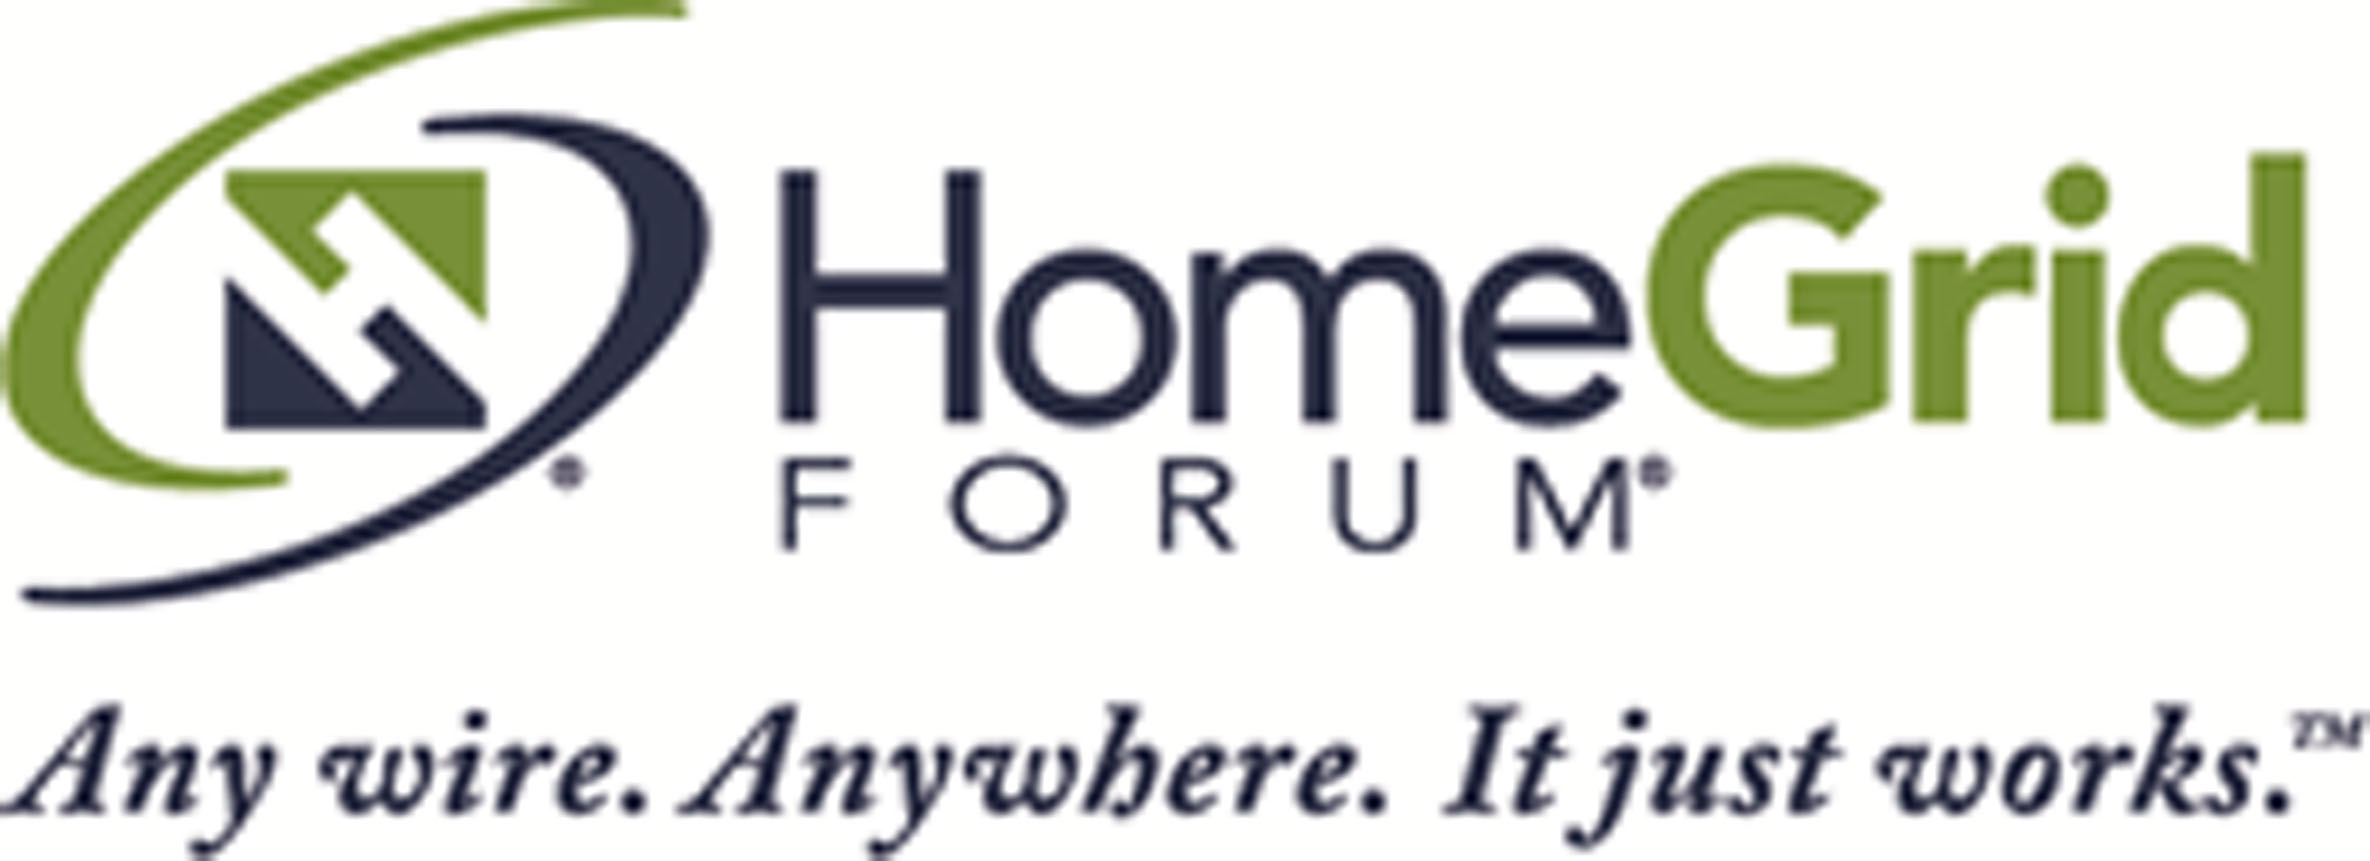 homegrid forum logo.jpg